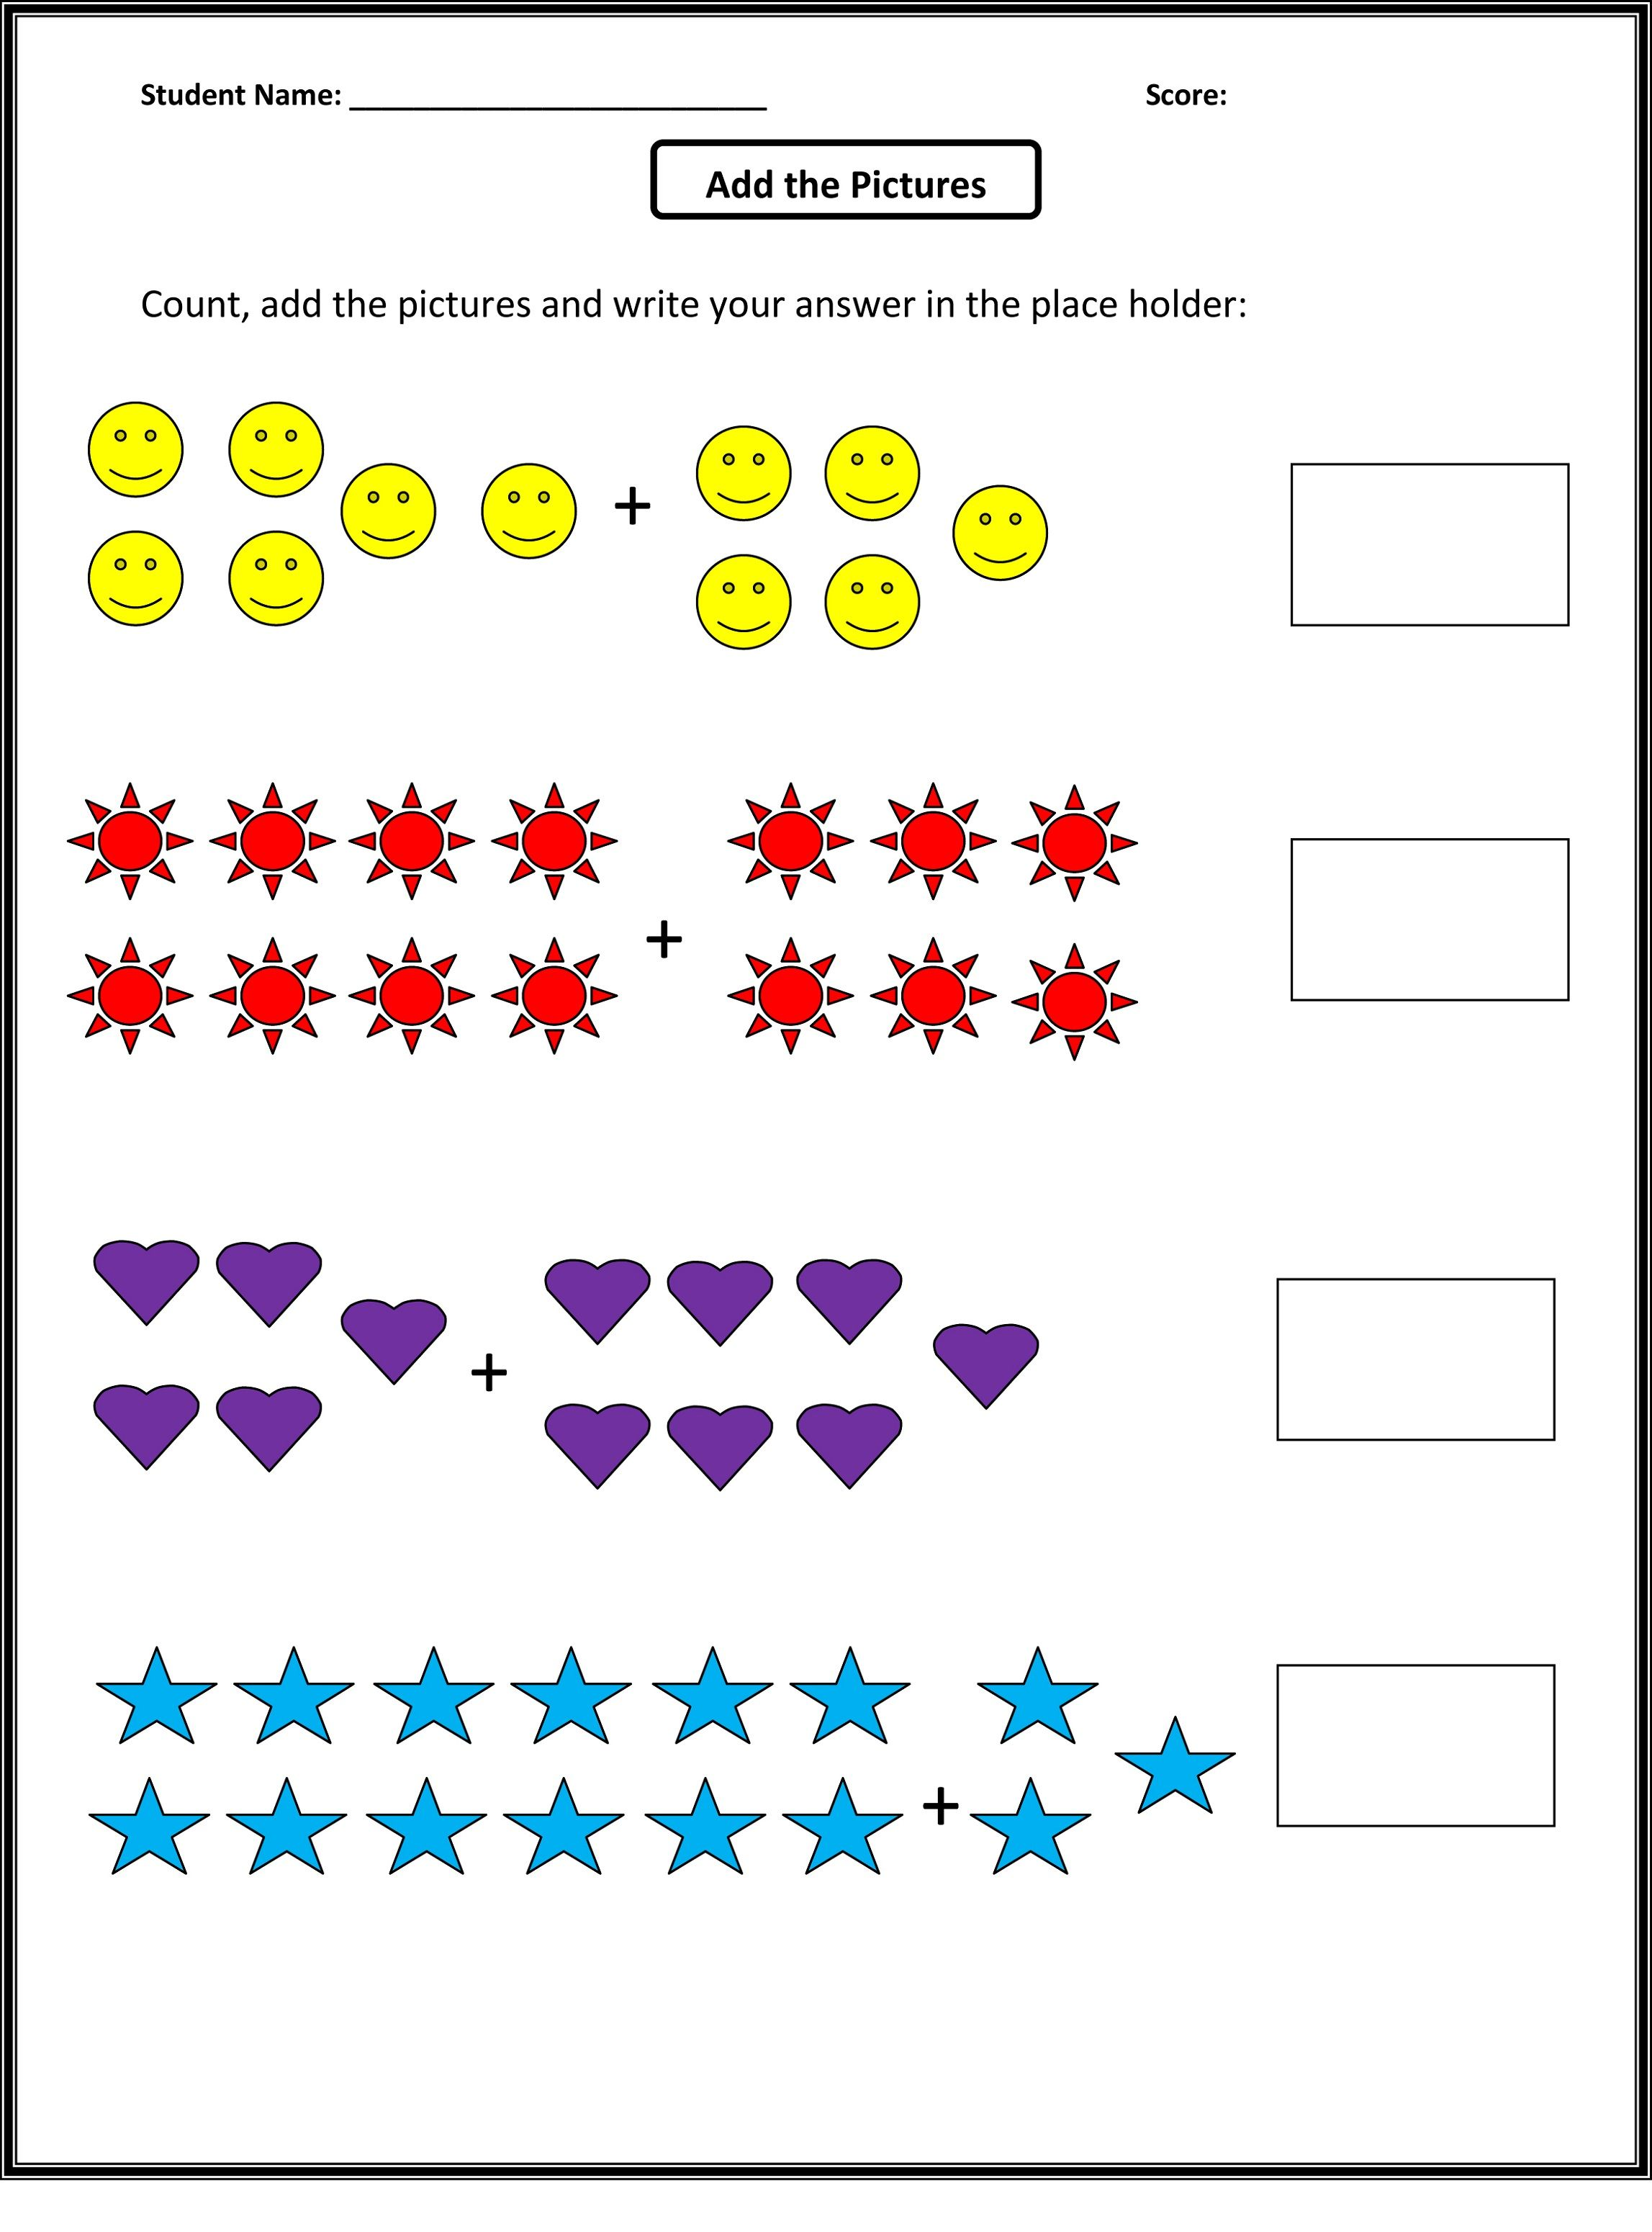 Math Activity Worksheets 1st Grade Math Worksheets Free Math Worksheets Fun Math Worksheets